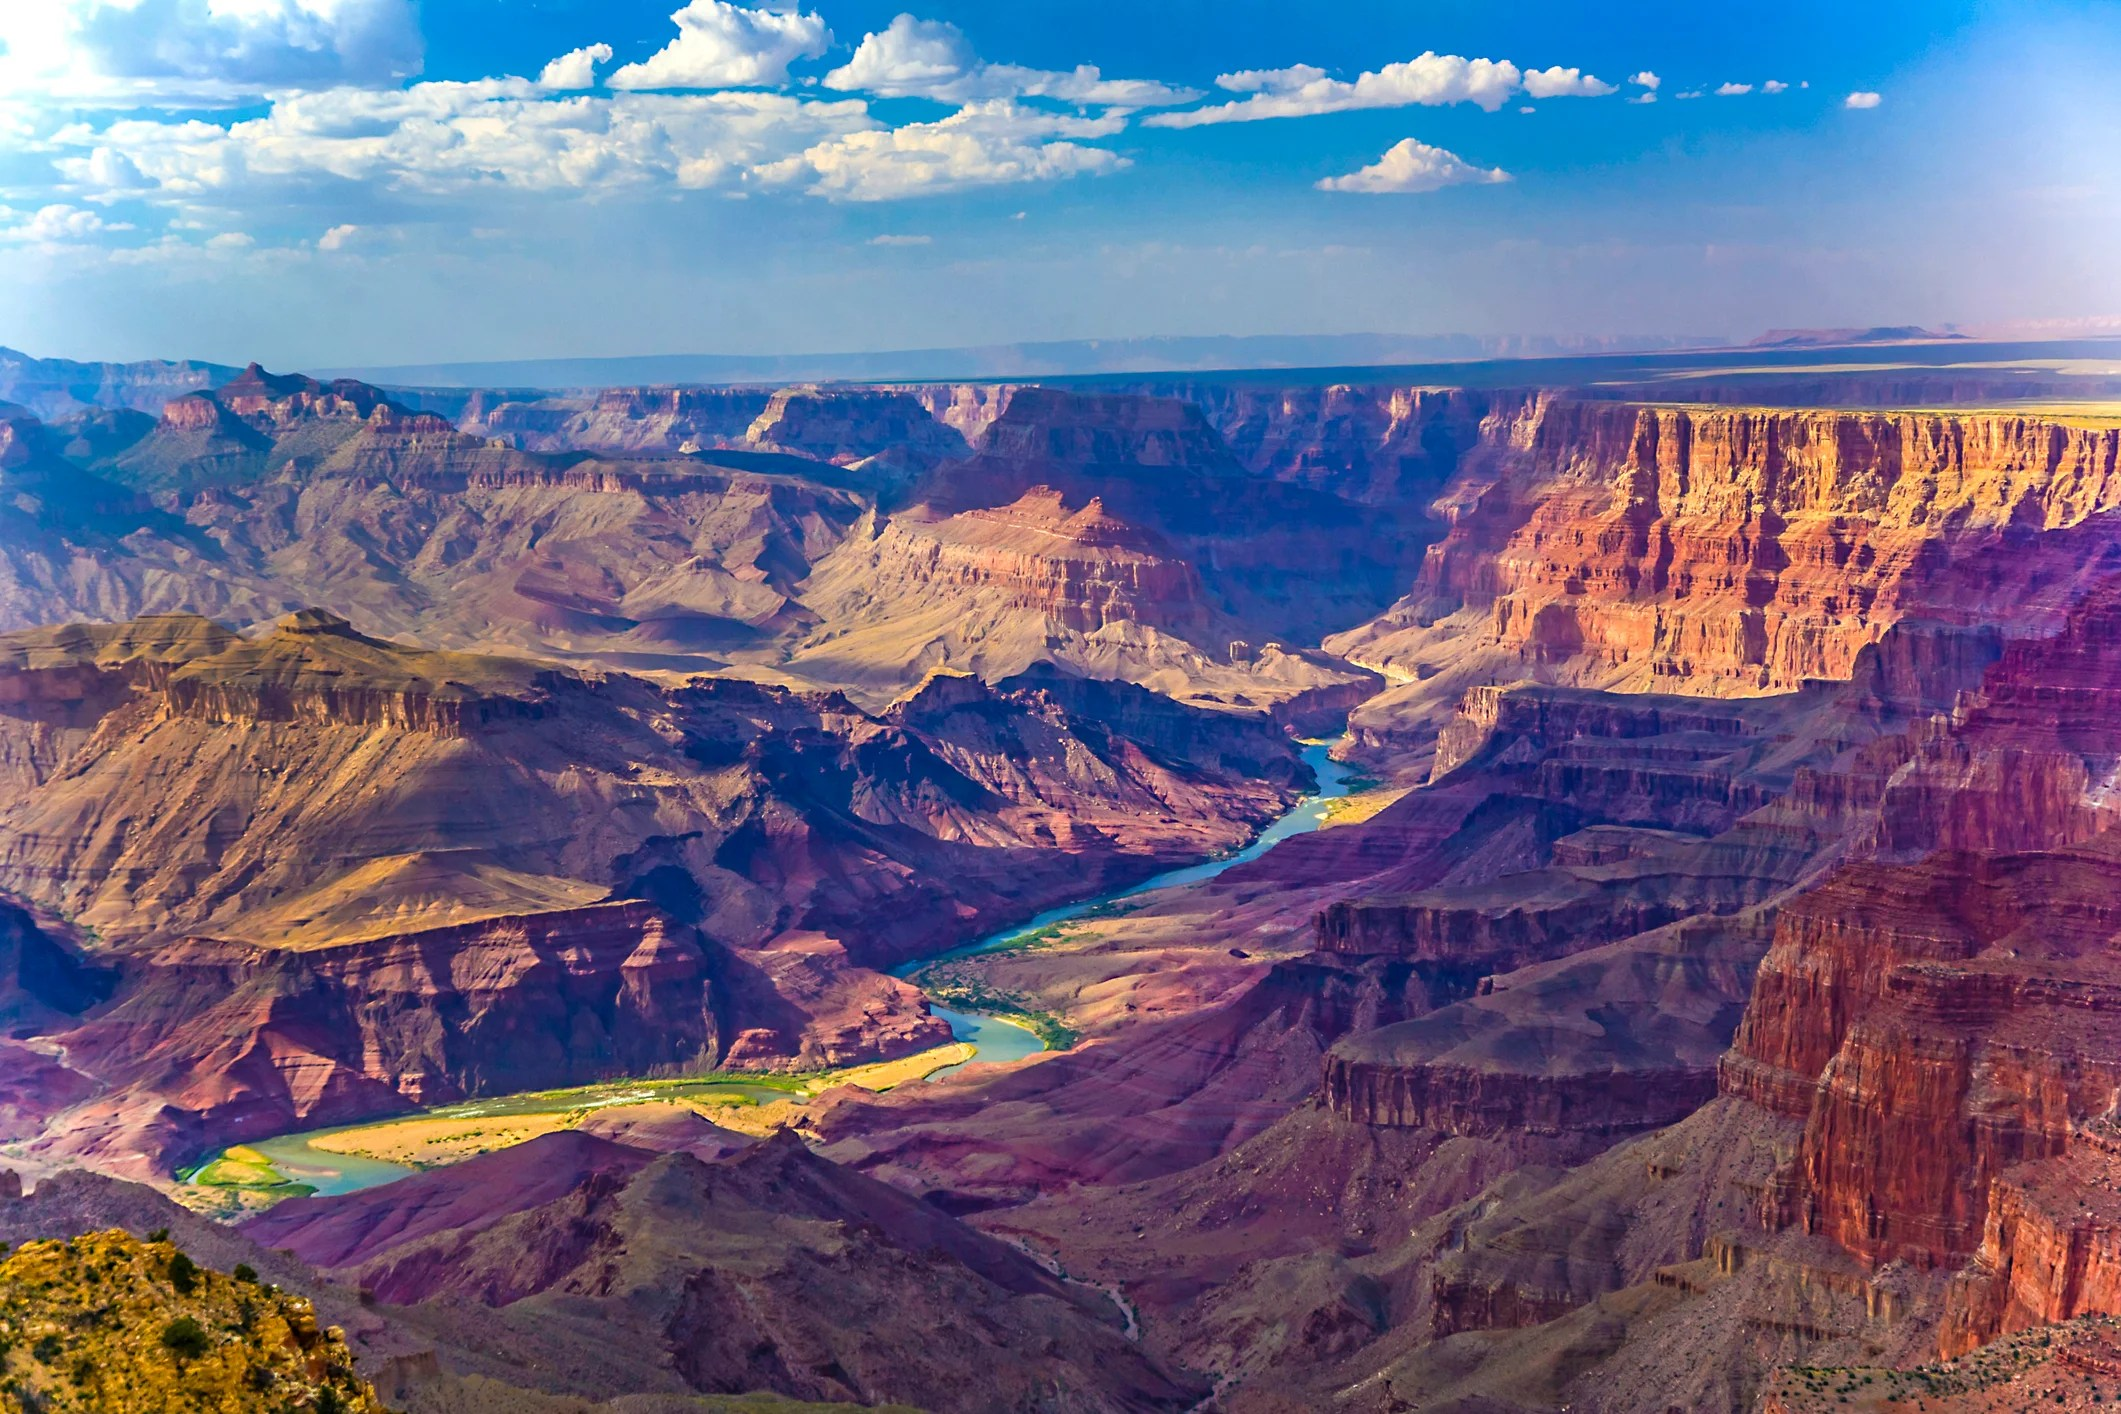 How to get from Las Vegas to the Grand Canyon